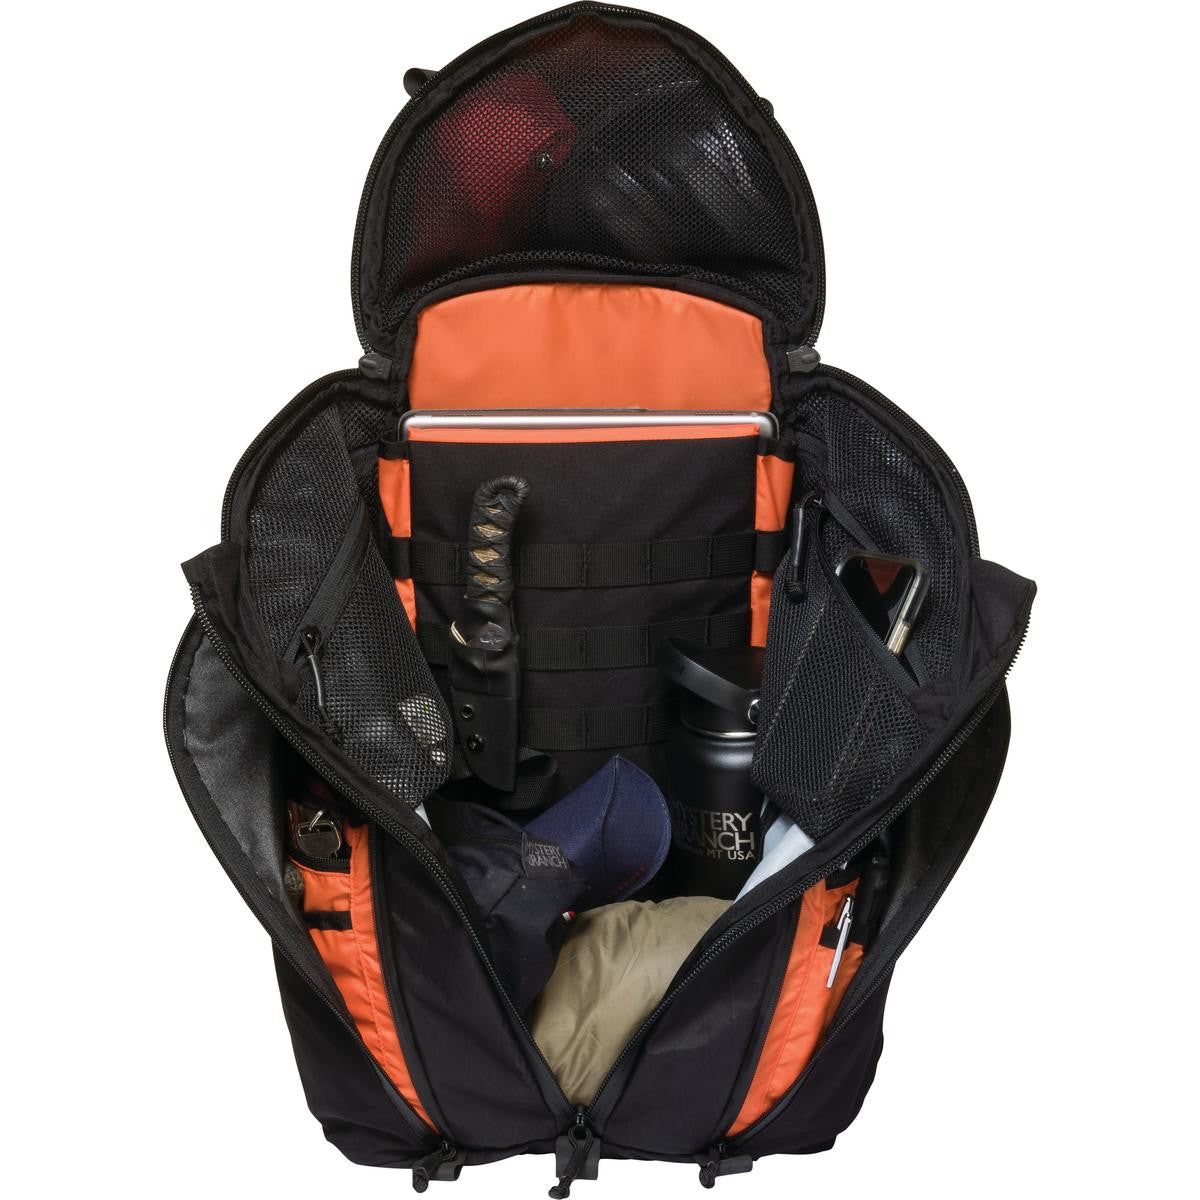 Carryology 暴行(店頭購入のみ)